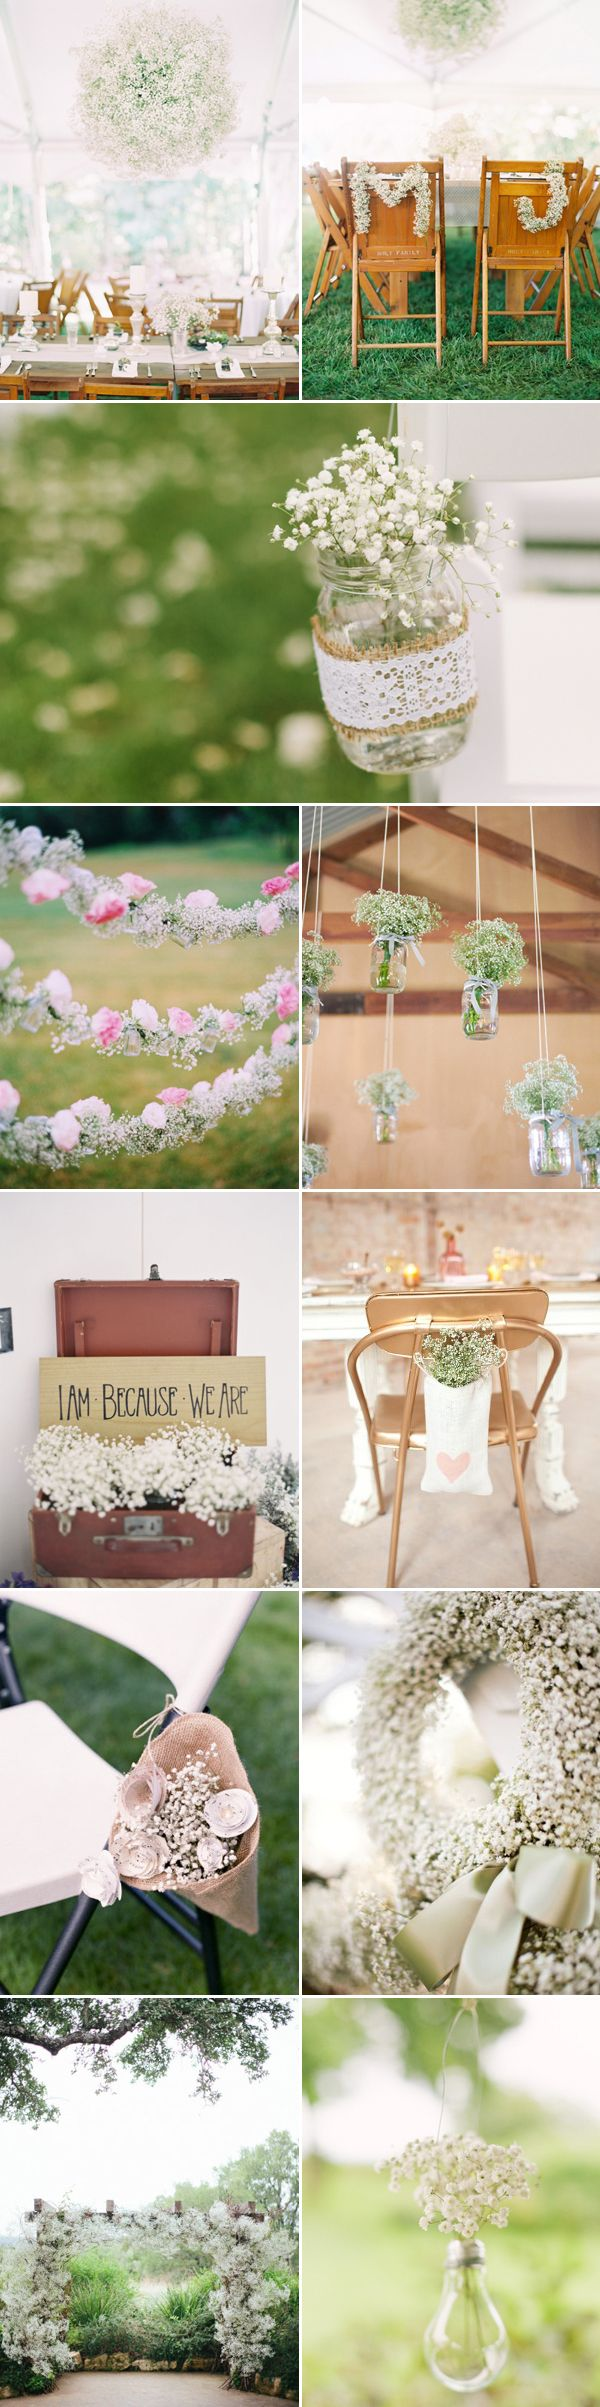 Rustic Wedding Ideas - Baby's Breath Wedding Decor: